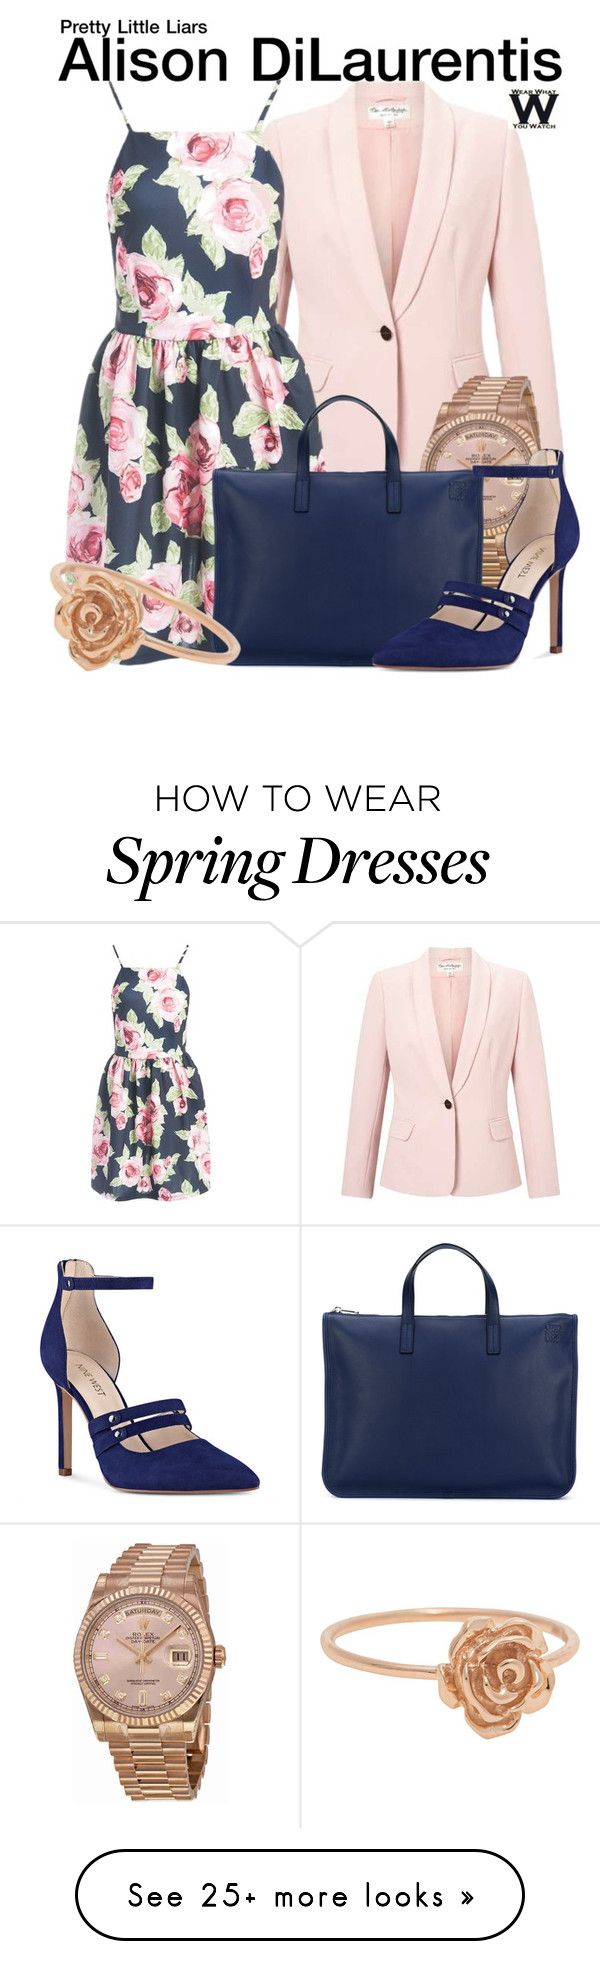 """Pretty Little Liars"" by wearwhatyouwatch on Polyvore featuring Miss Selfridge, Sans Souci, Rolex, Loewe, Nine West and television"